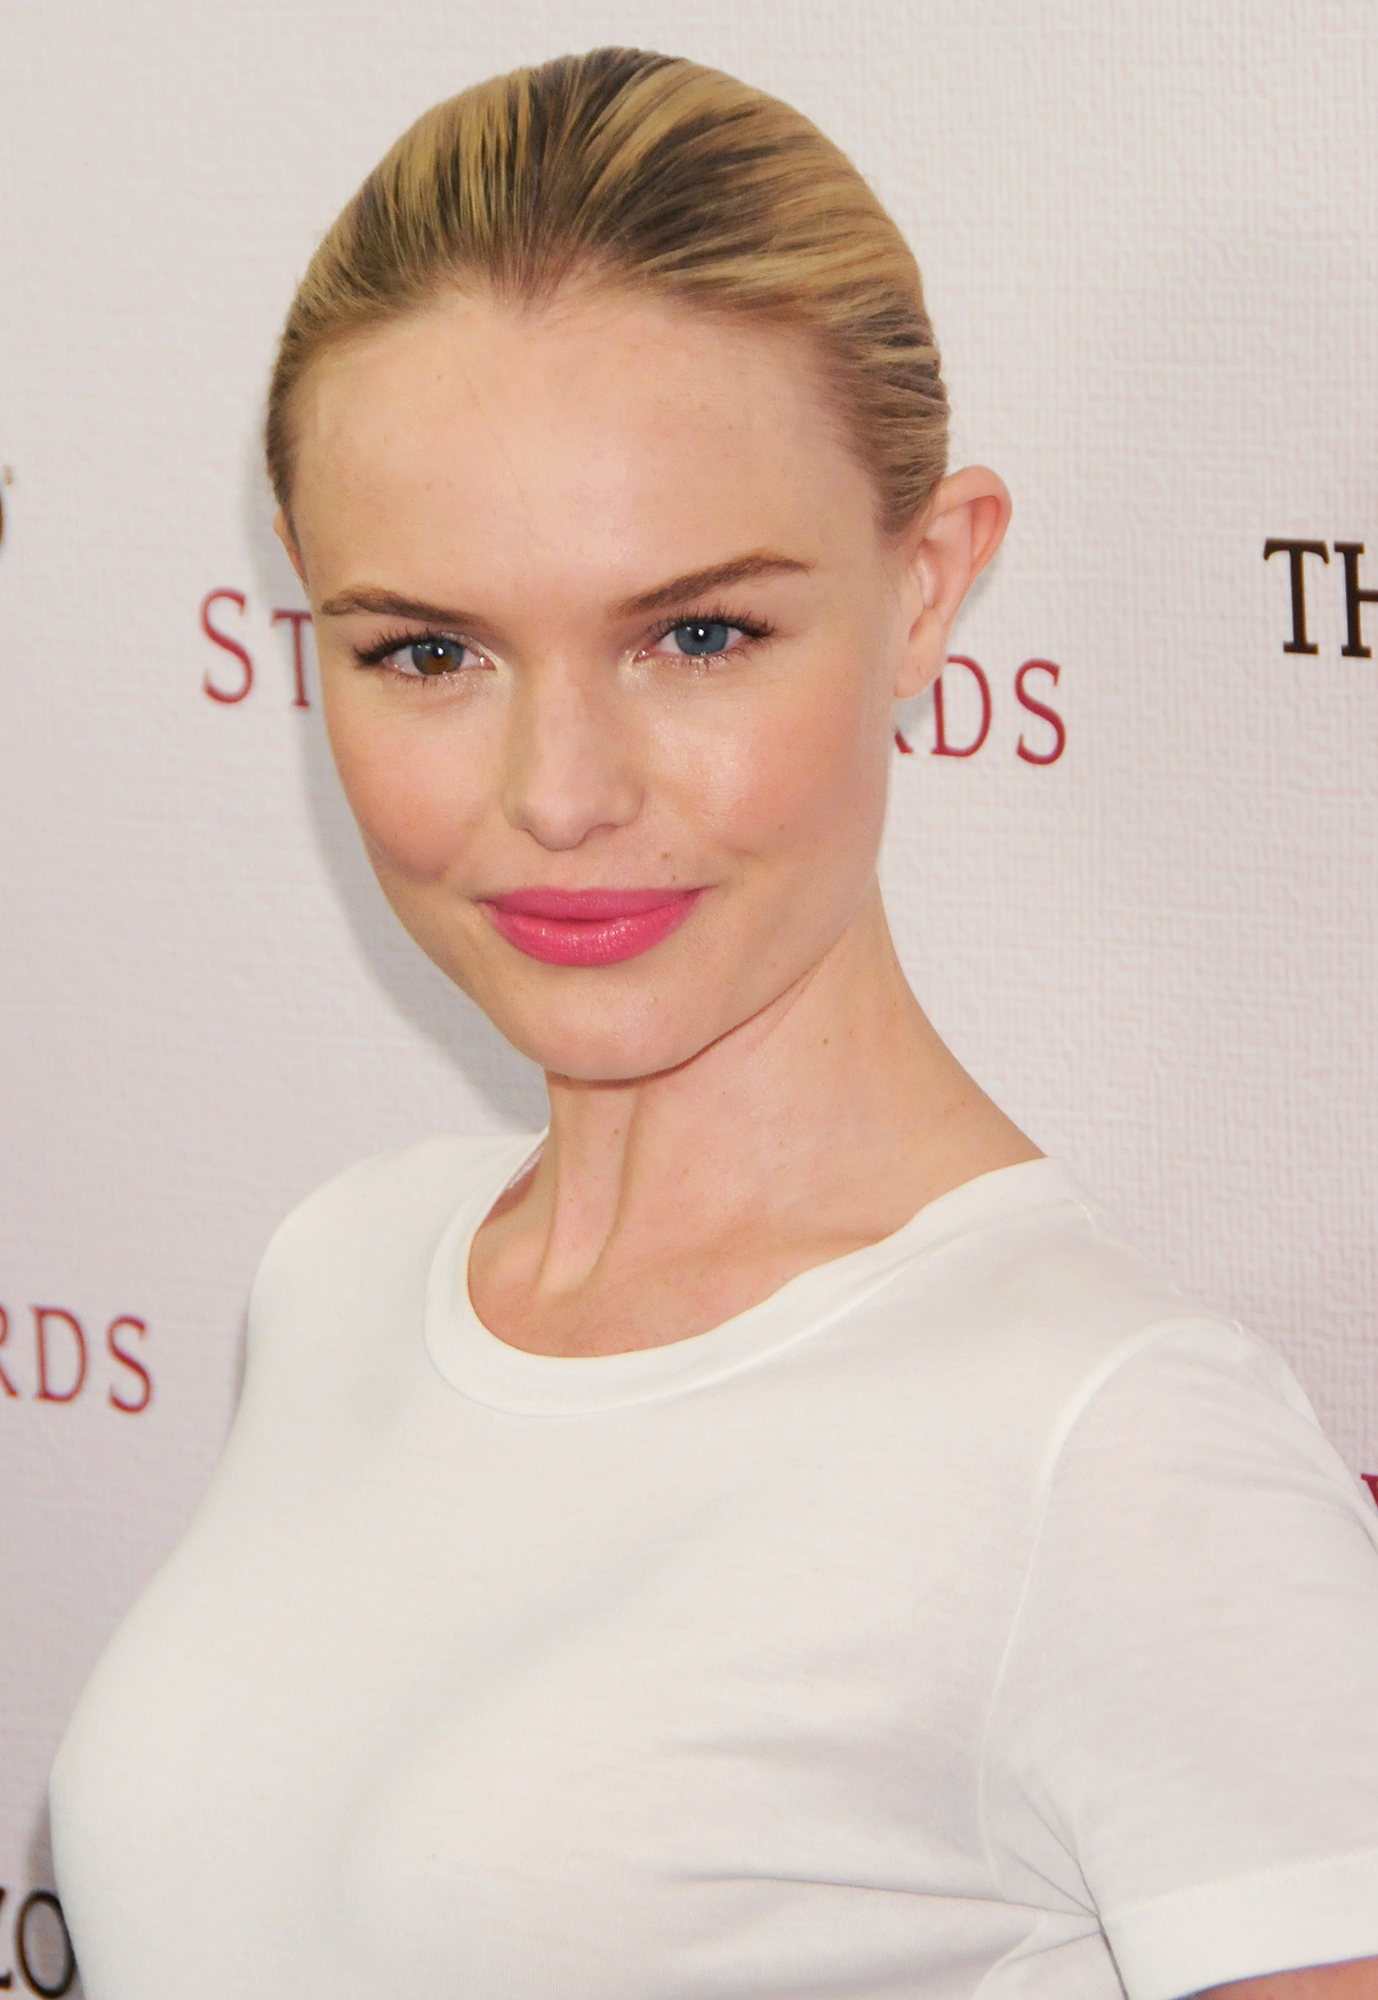 See Birthday Girl Kate Bosworth's Best Beauty Moments - The actress added a pink satin lip and hint of blush to her #flawless complexion at the 2010 Hollywood Style Awards.